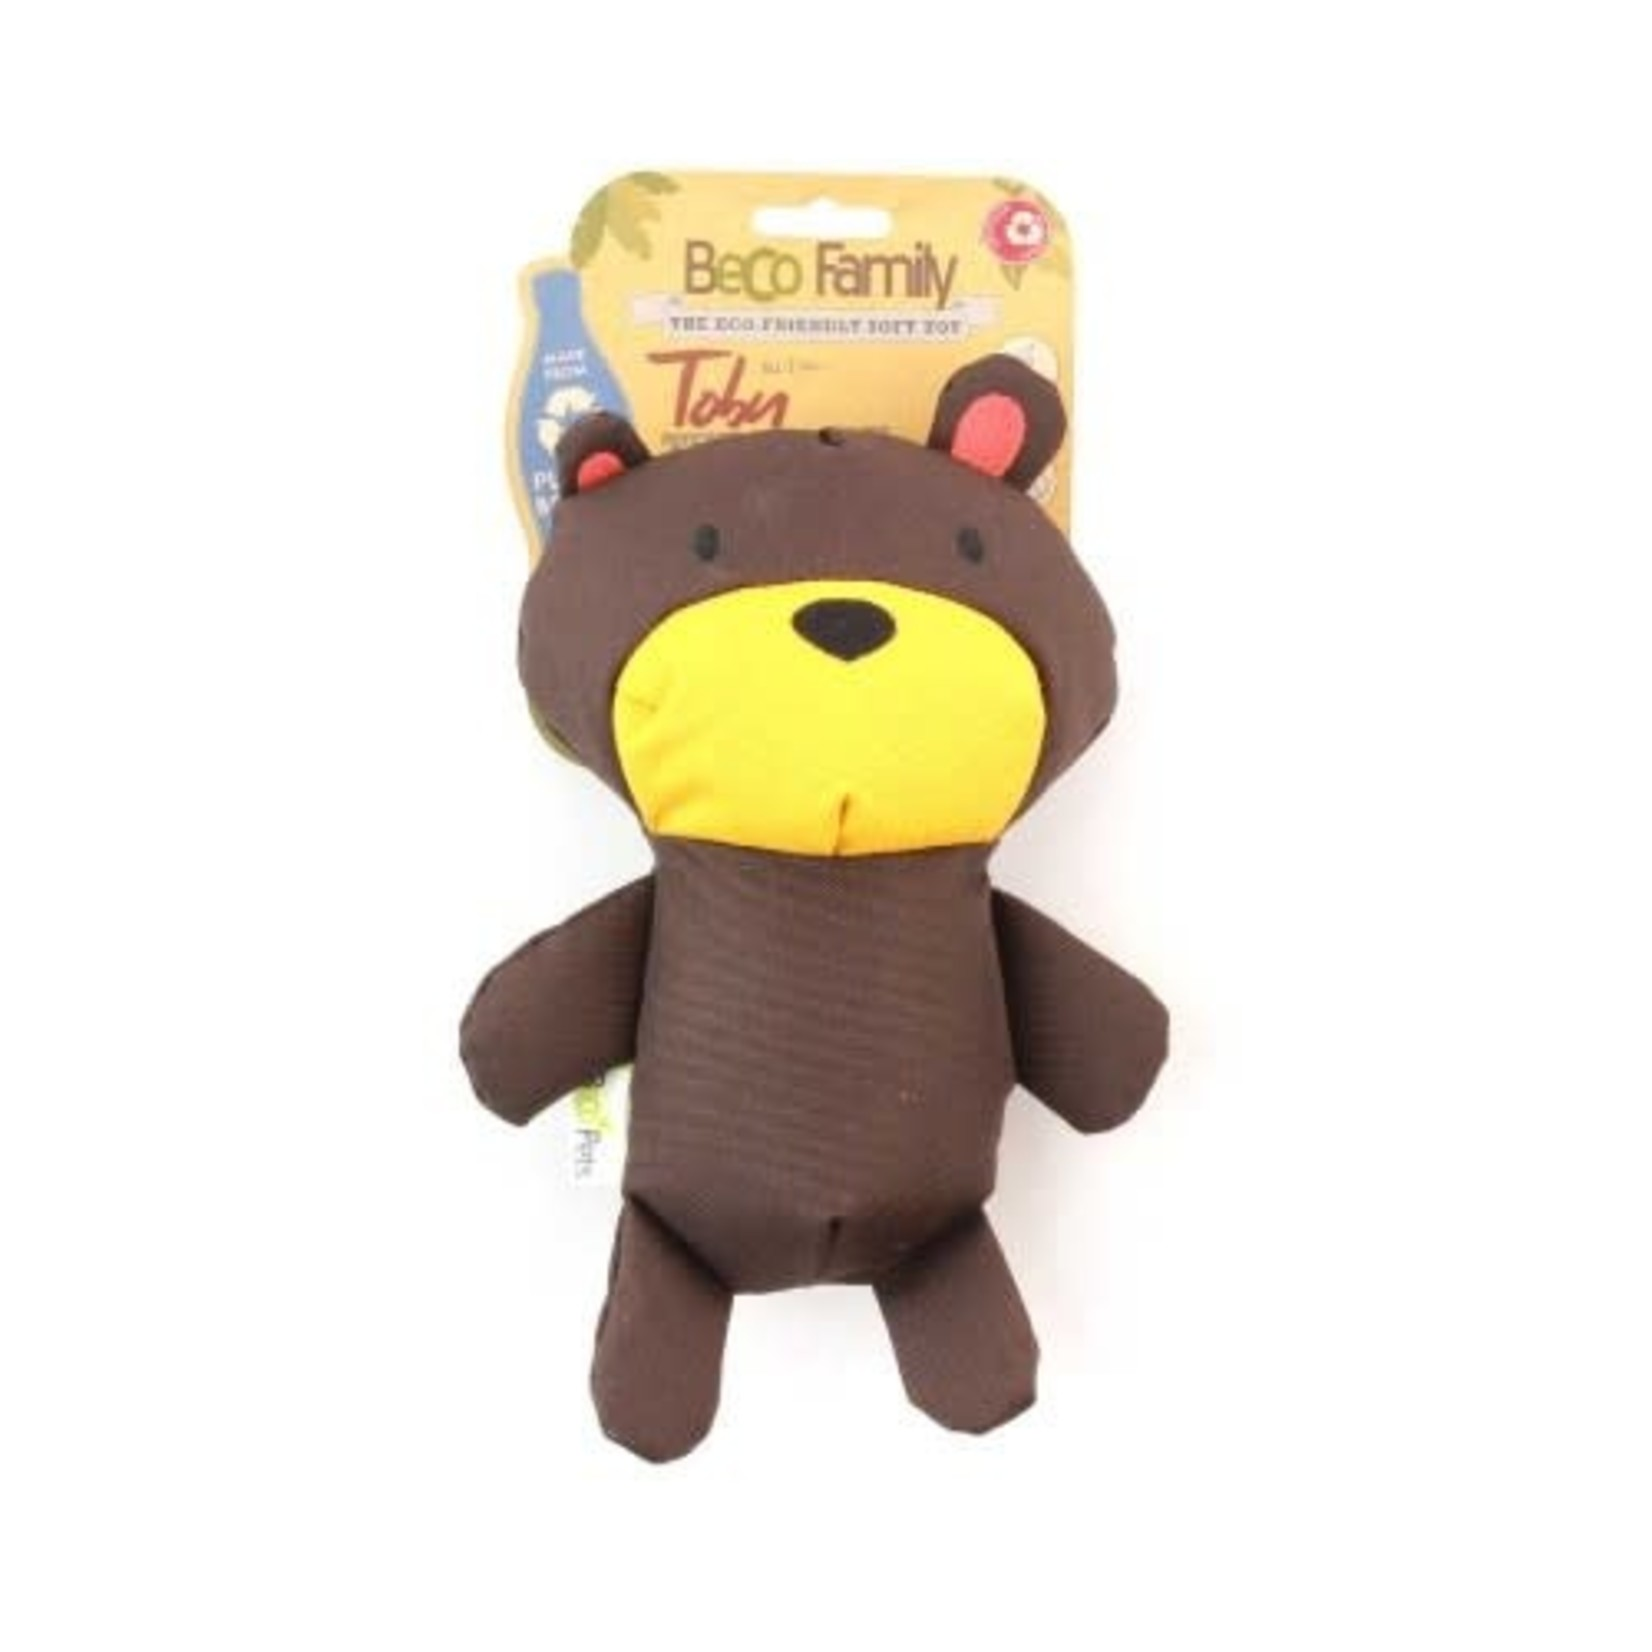 Beco Pets Beco Toby the Teddy Medium